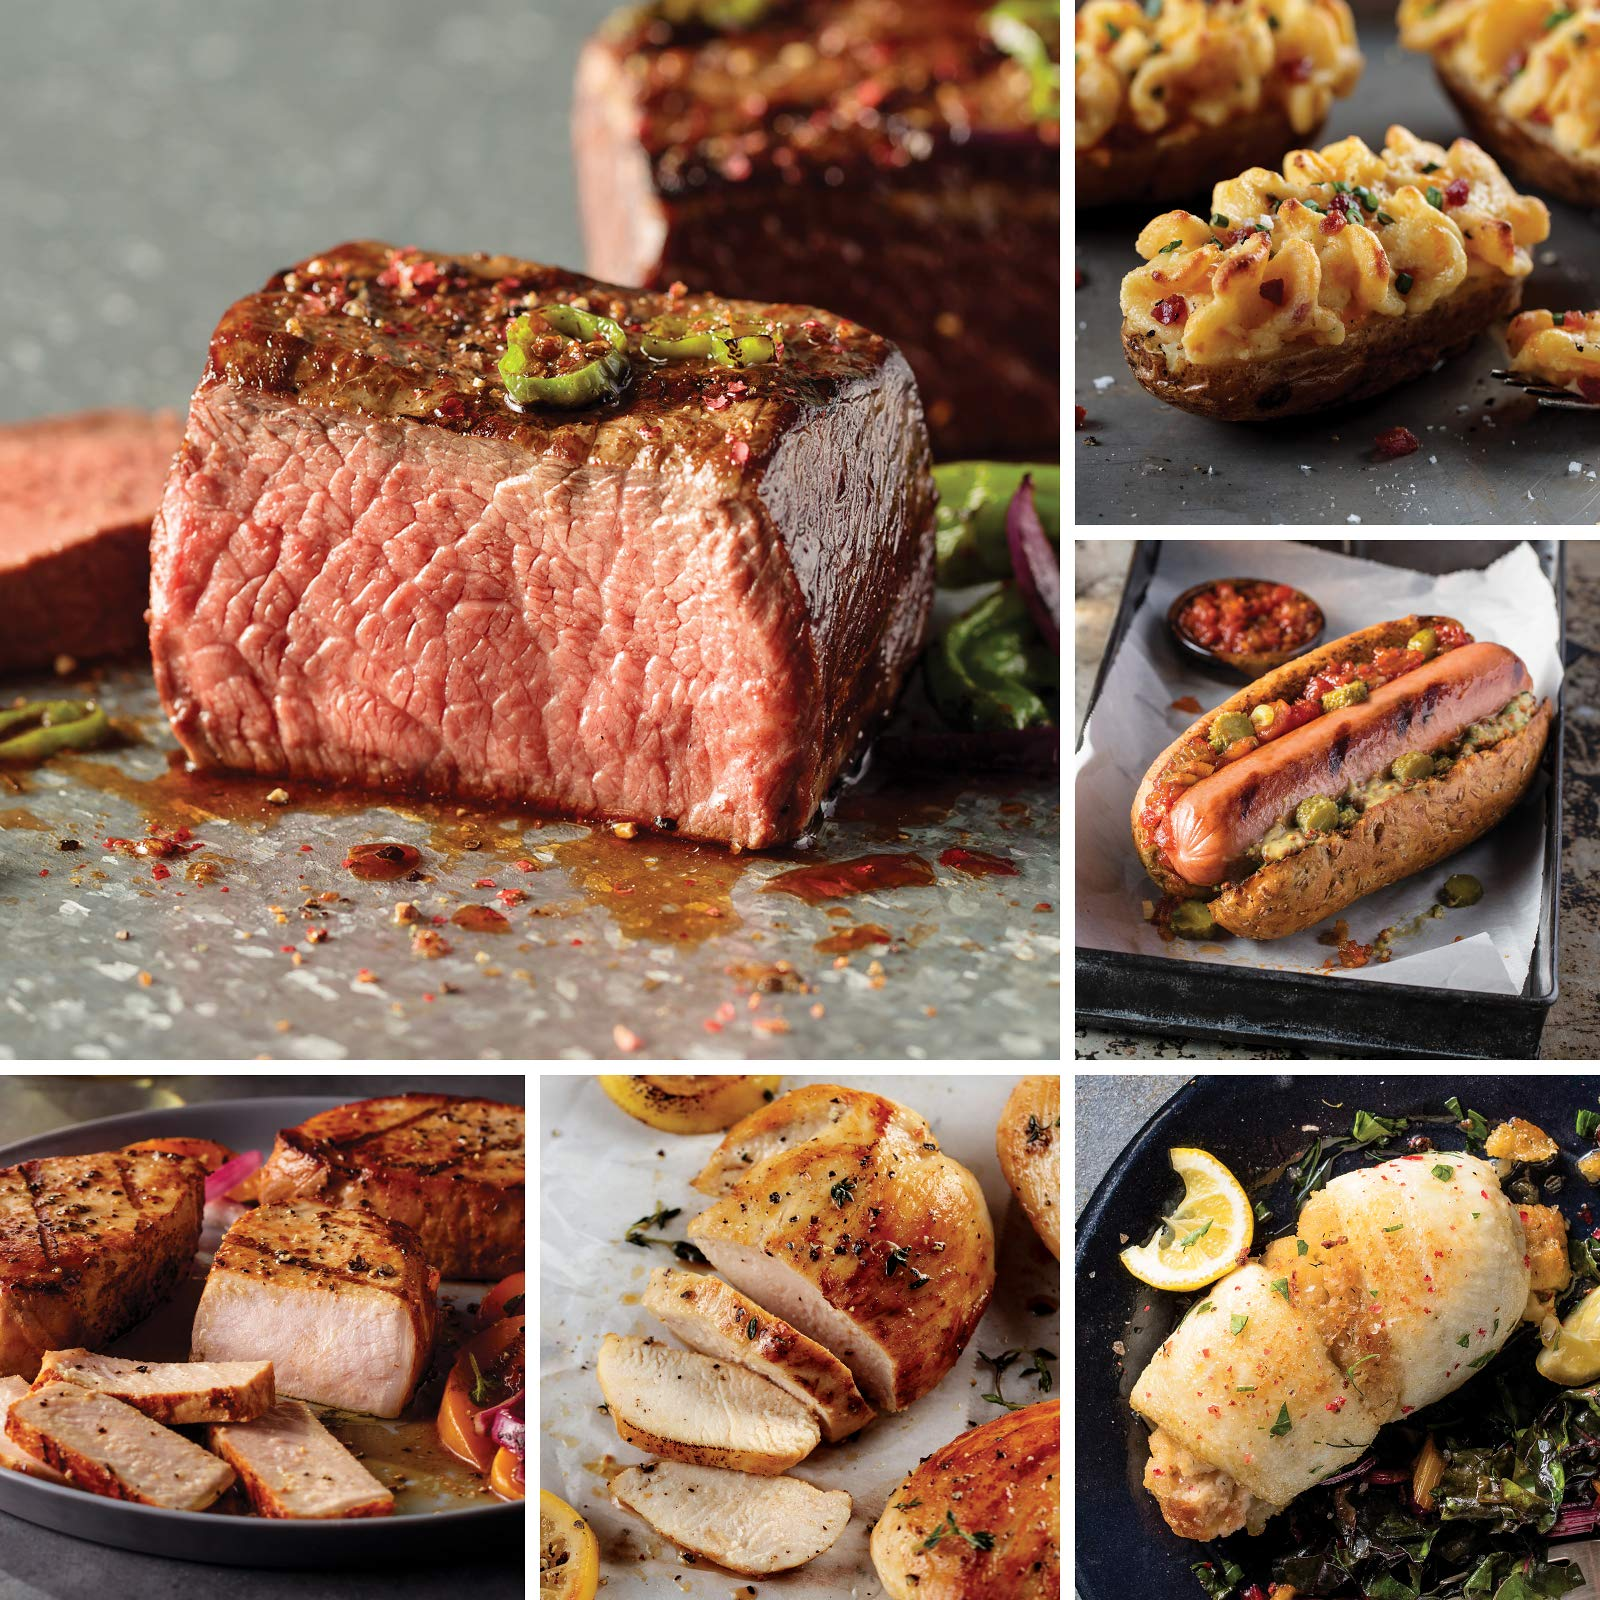 Omaha Steaks Grilling Collection (26-Piece with Top Sirloins, Boneless Pork Chops, Sole Filets Stuffed With Scallops and Crab Meat, Boneless Chicken Breasts, Jumbo Franks, and Stuffed Baked Potatoes) by Omaha Steaks